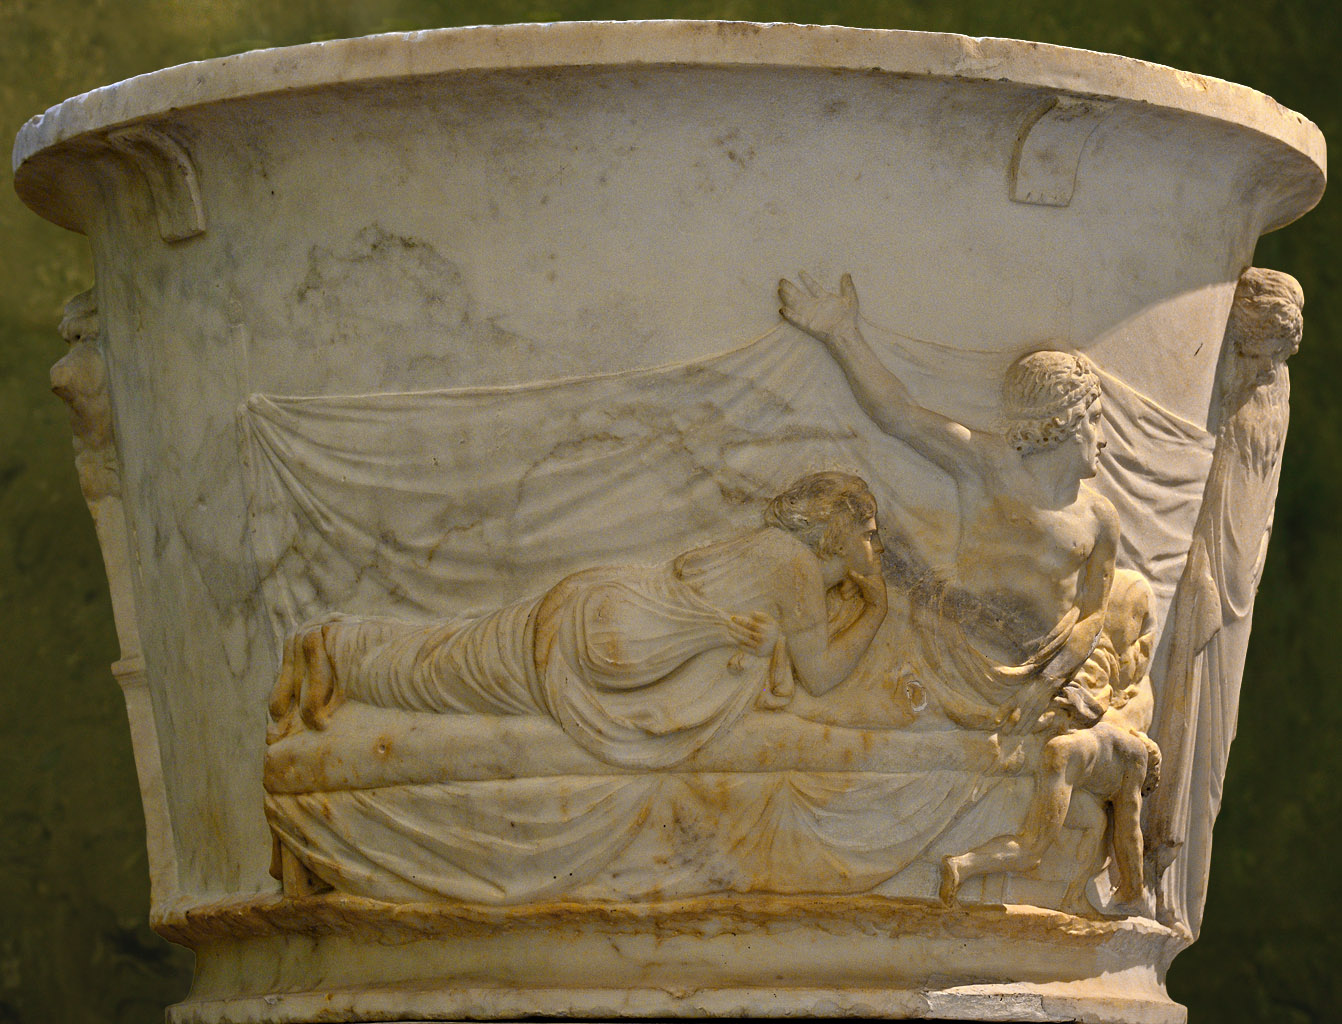 """Decorative vase """"Dionysus and his companions"""" (a close-up of the frieze relief). Marble. 2nd century CE. Inv. No. A 111. Saint Petersburg, The State Hermitage Museum"""